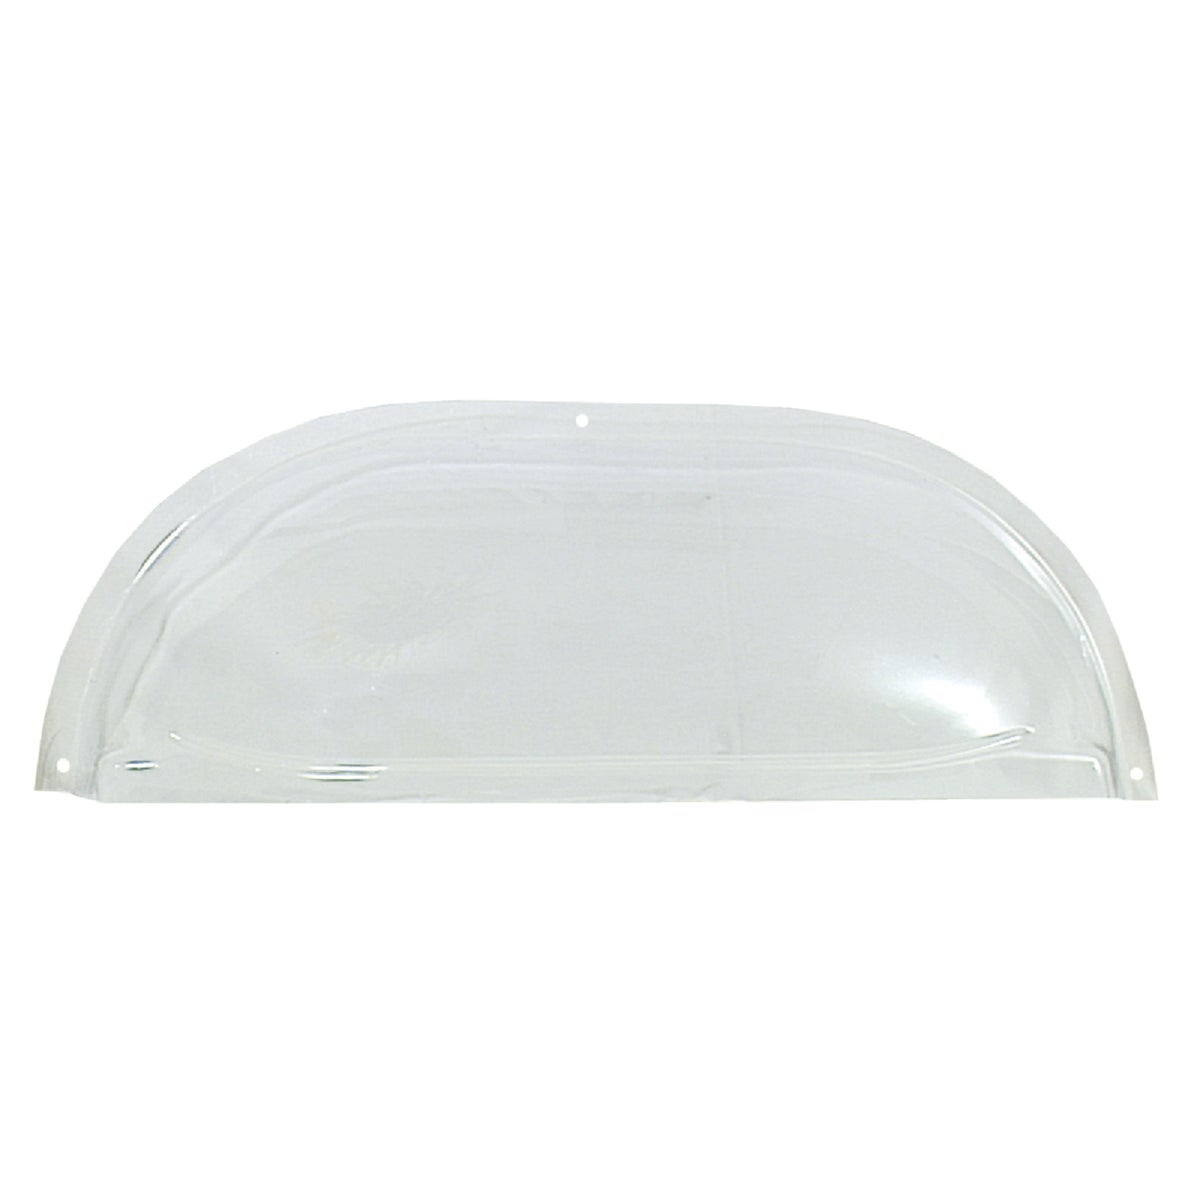 40X15 WINDOW WELL COVER - W4015-DIB by Maccourt Products